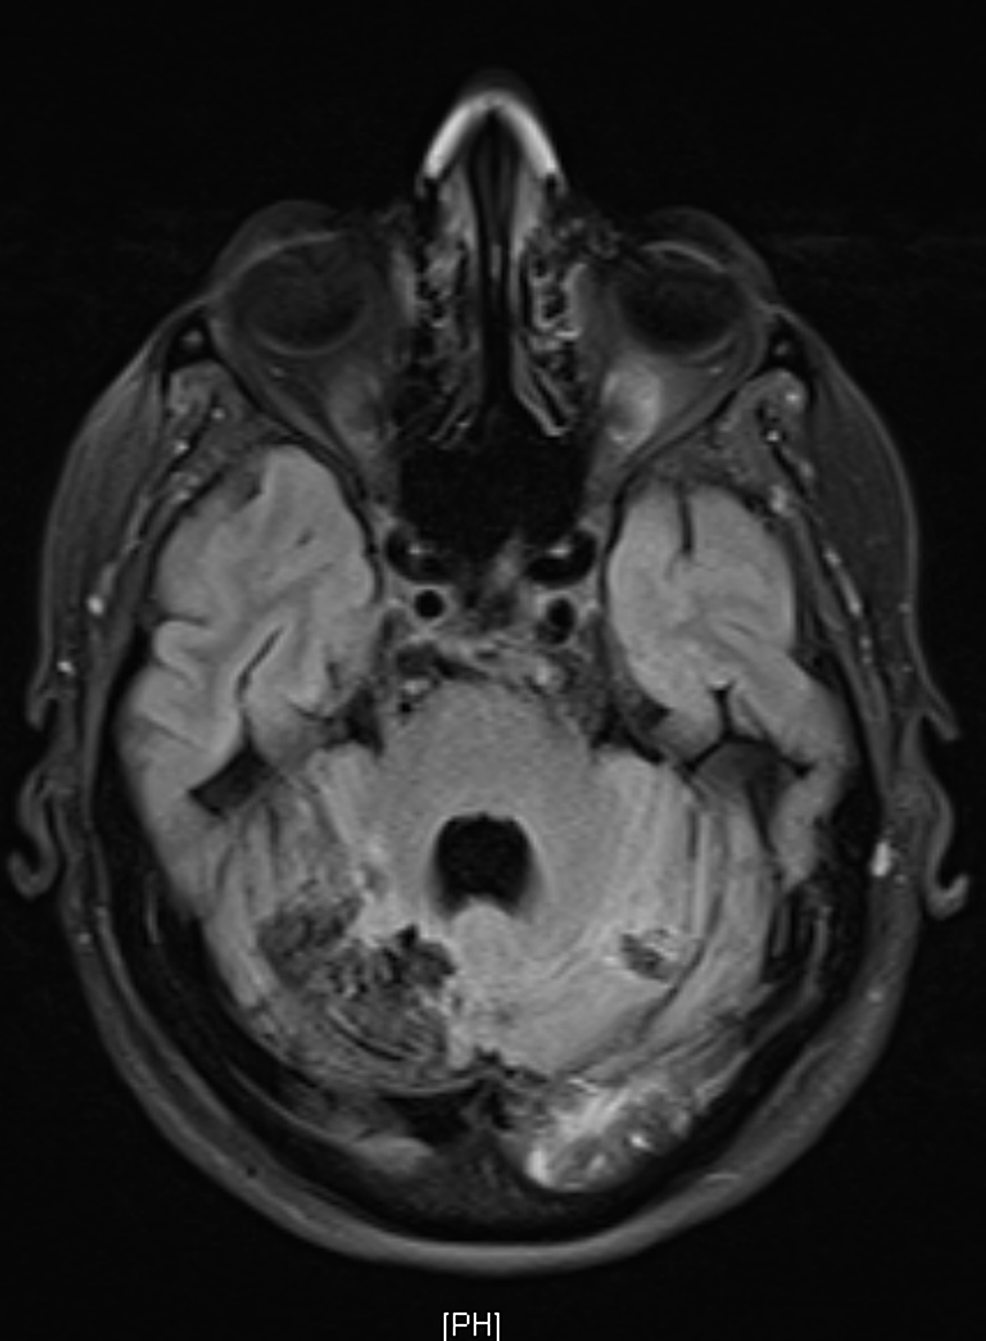 Follow-up-magnetic-resonance-imaging-(MRI)-three-months-after-discharge-showing-loss-of-volume-and-encephalomalacia-in-the-right-and-left-occipital-regions-representing-sequelae-of-previous-infarction